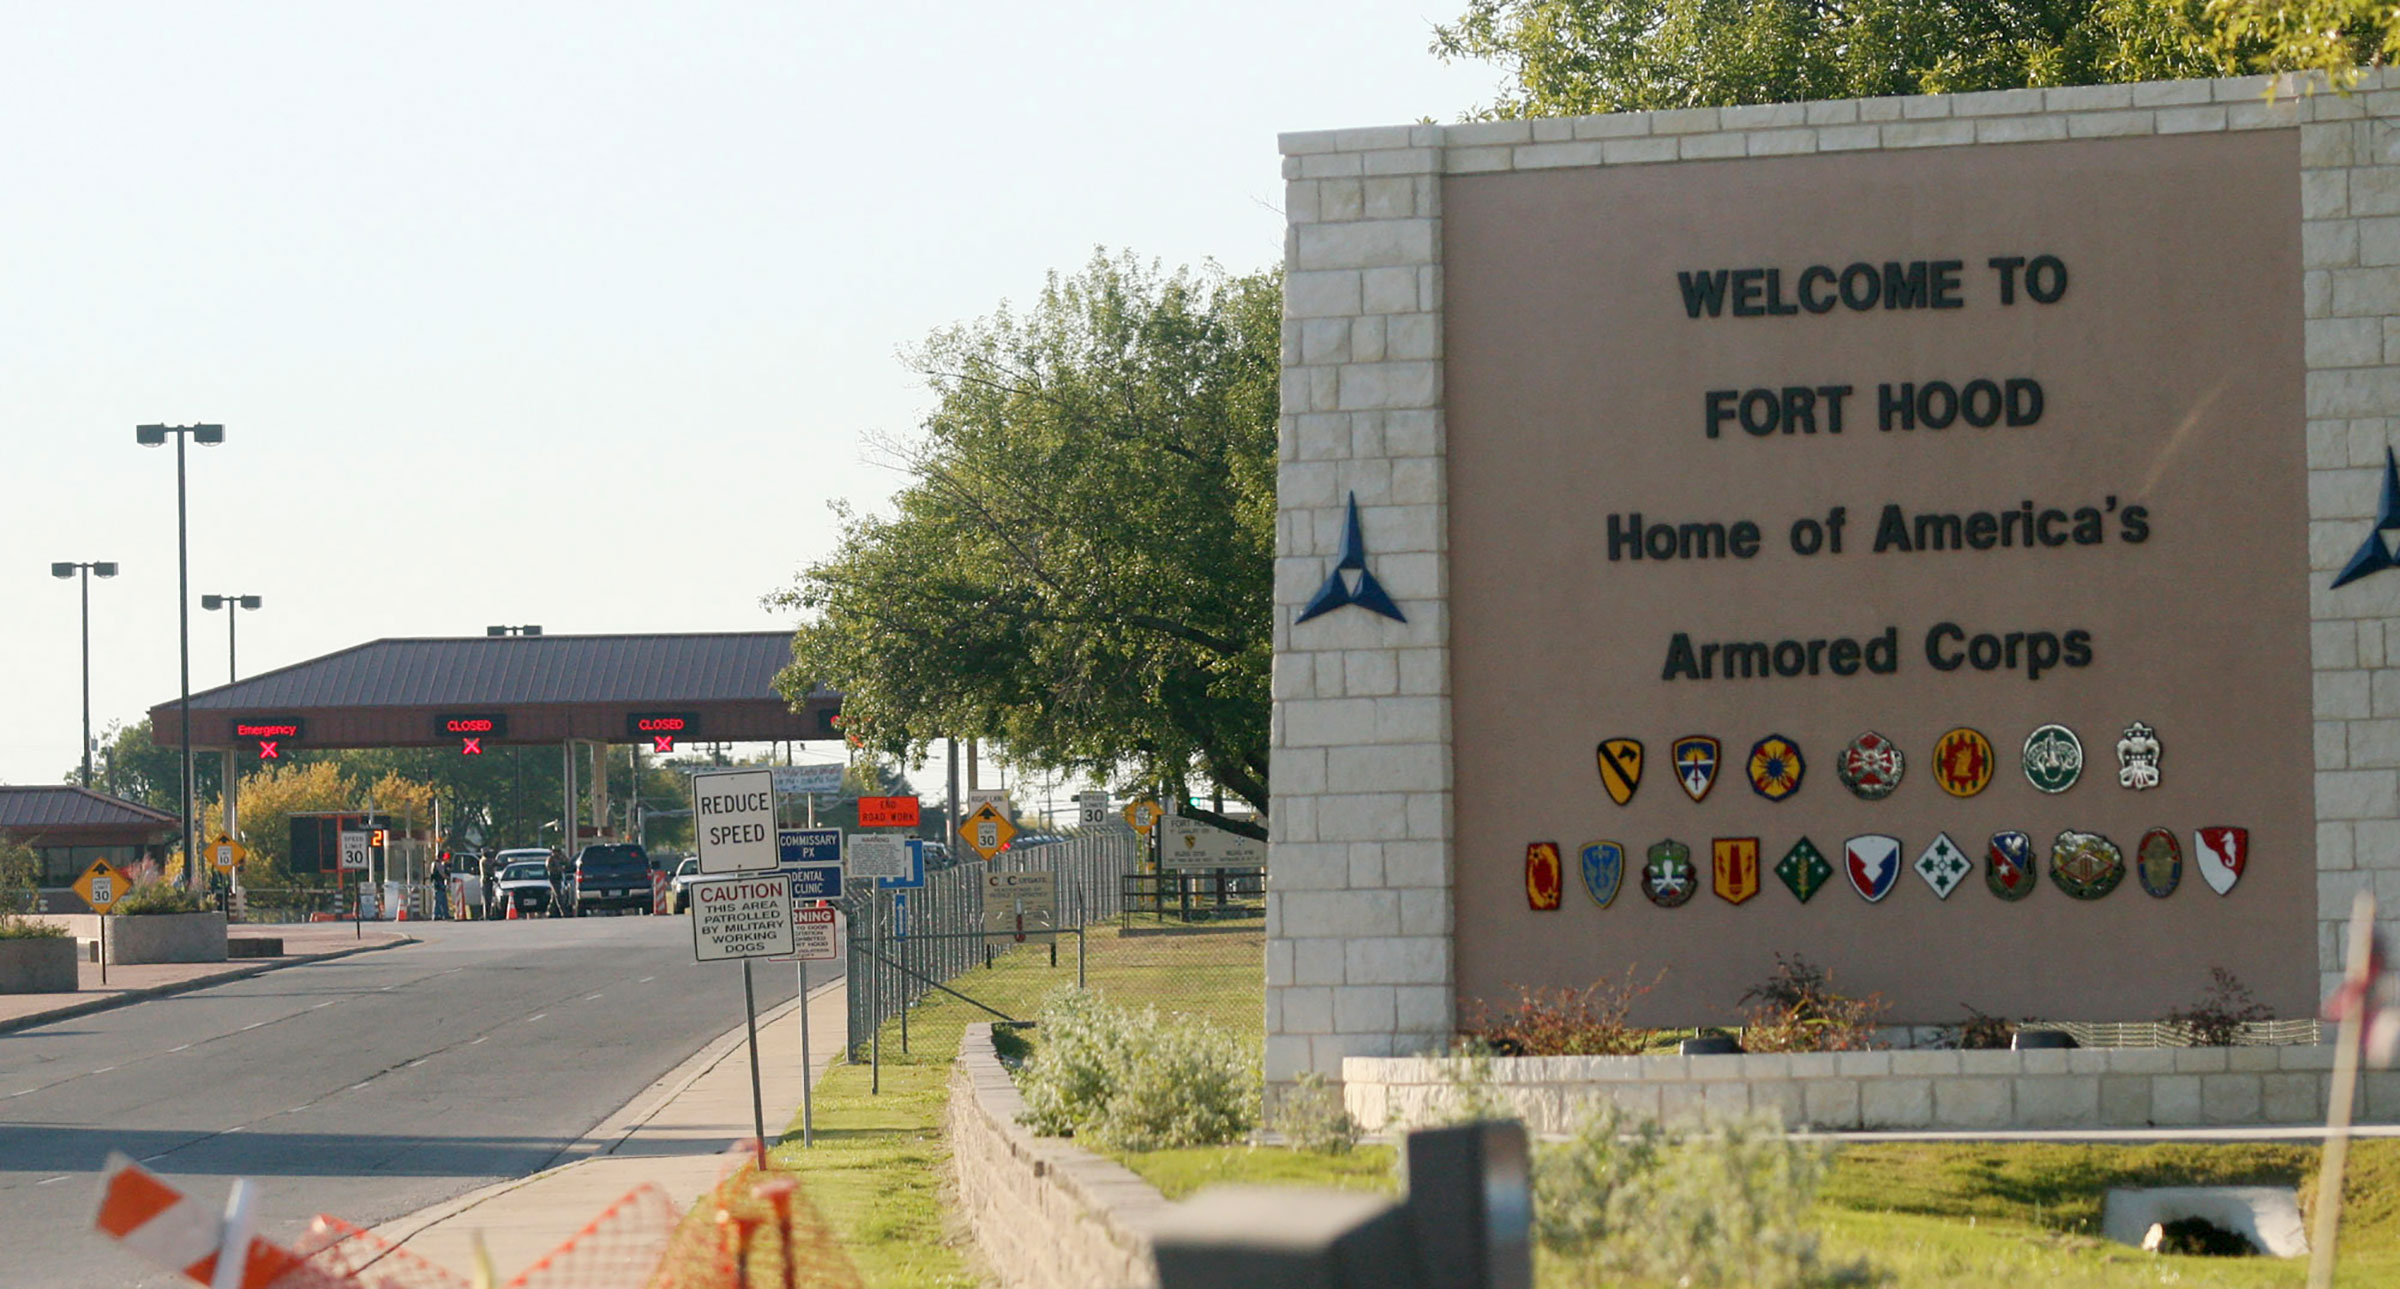 The entrance to Fort Hood Army Base in Fort Hood, Texas, on Nov. 5, 2009